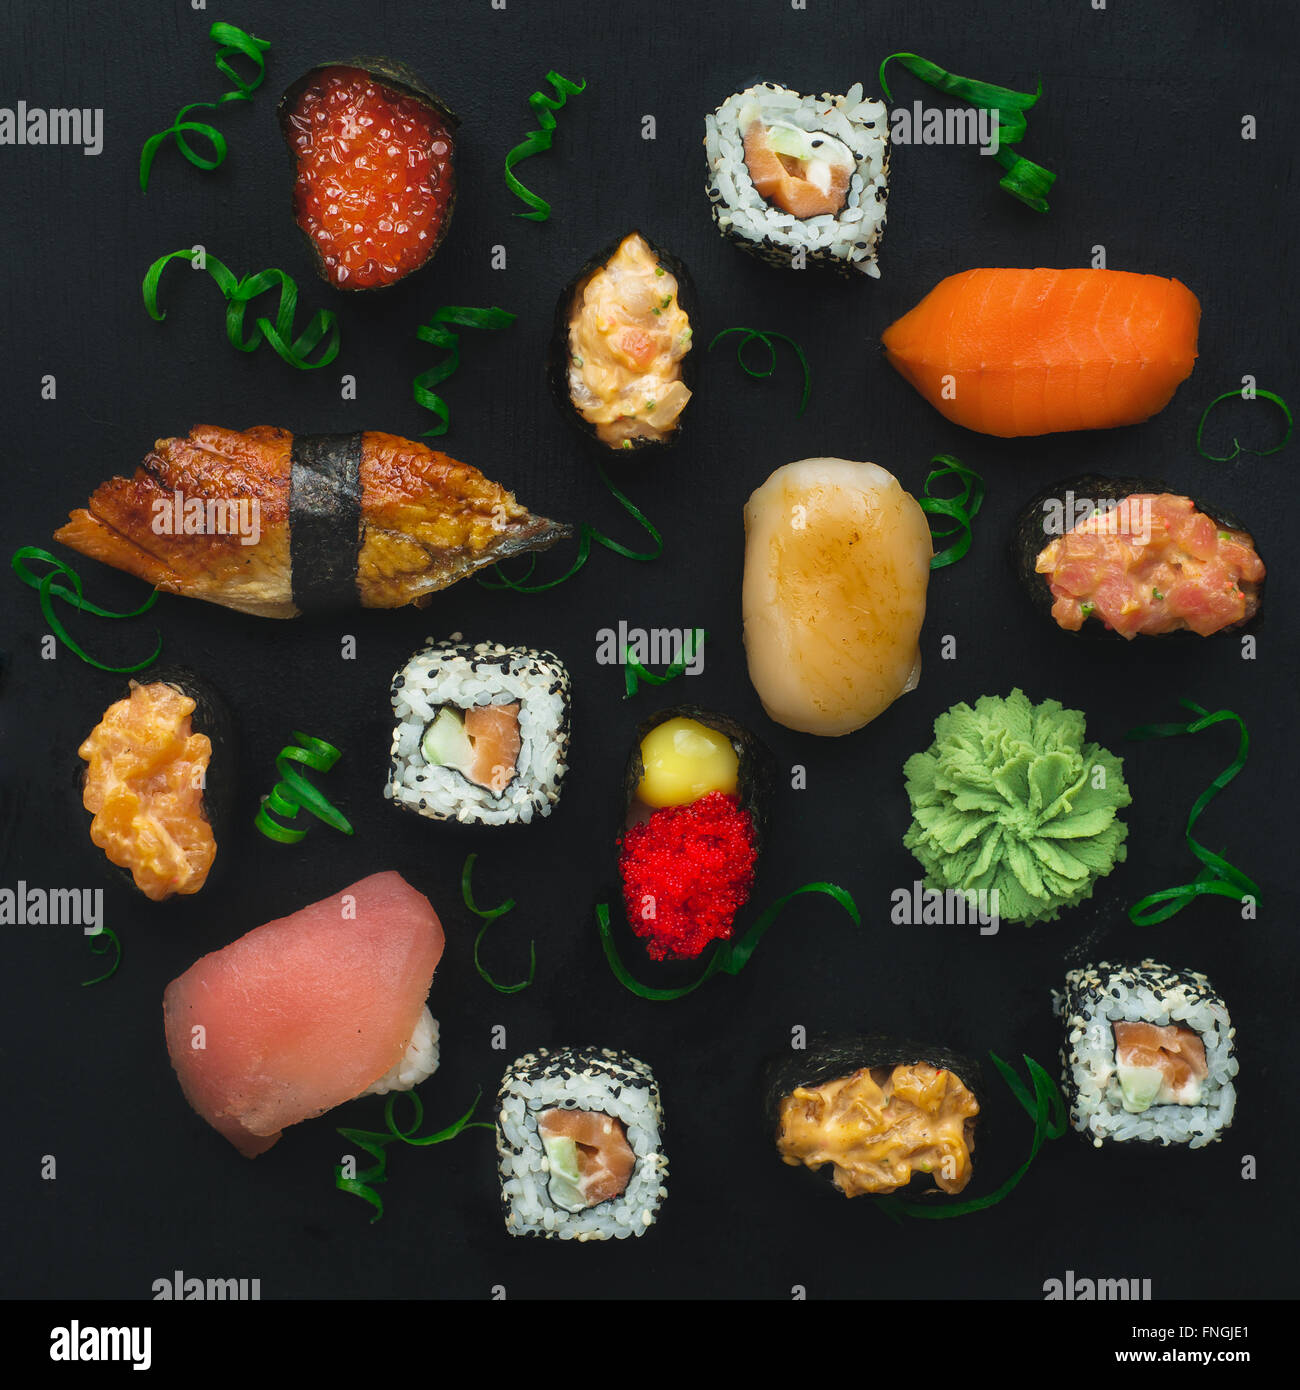 Sushi pattern on a dark background - Stock Image